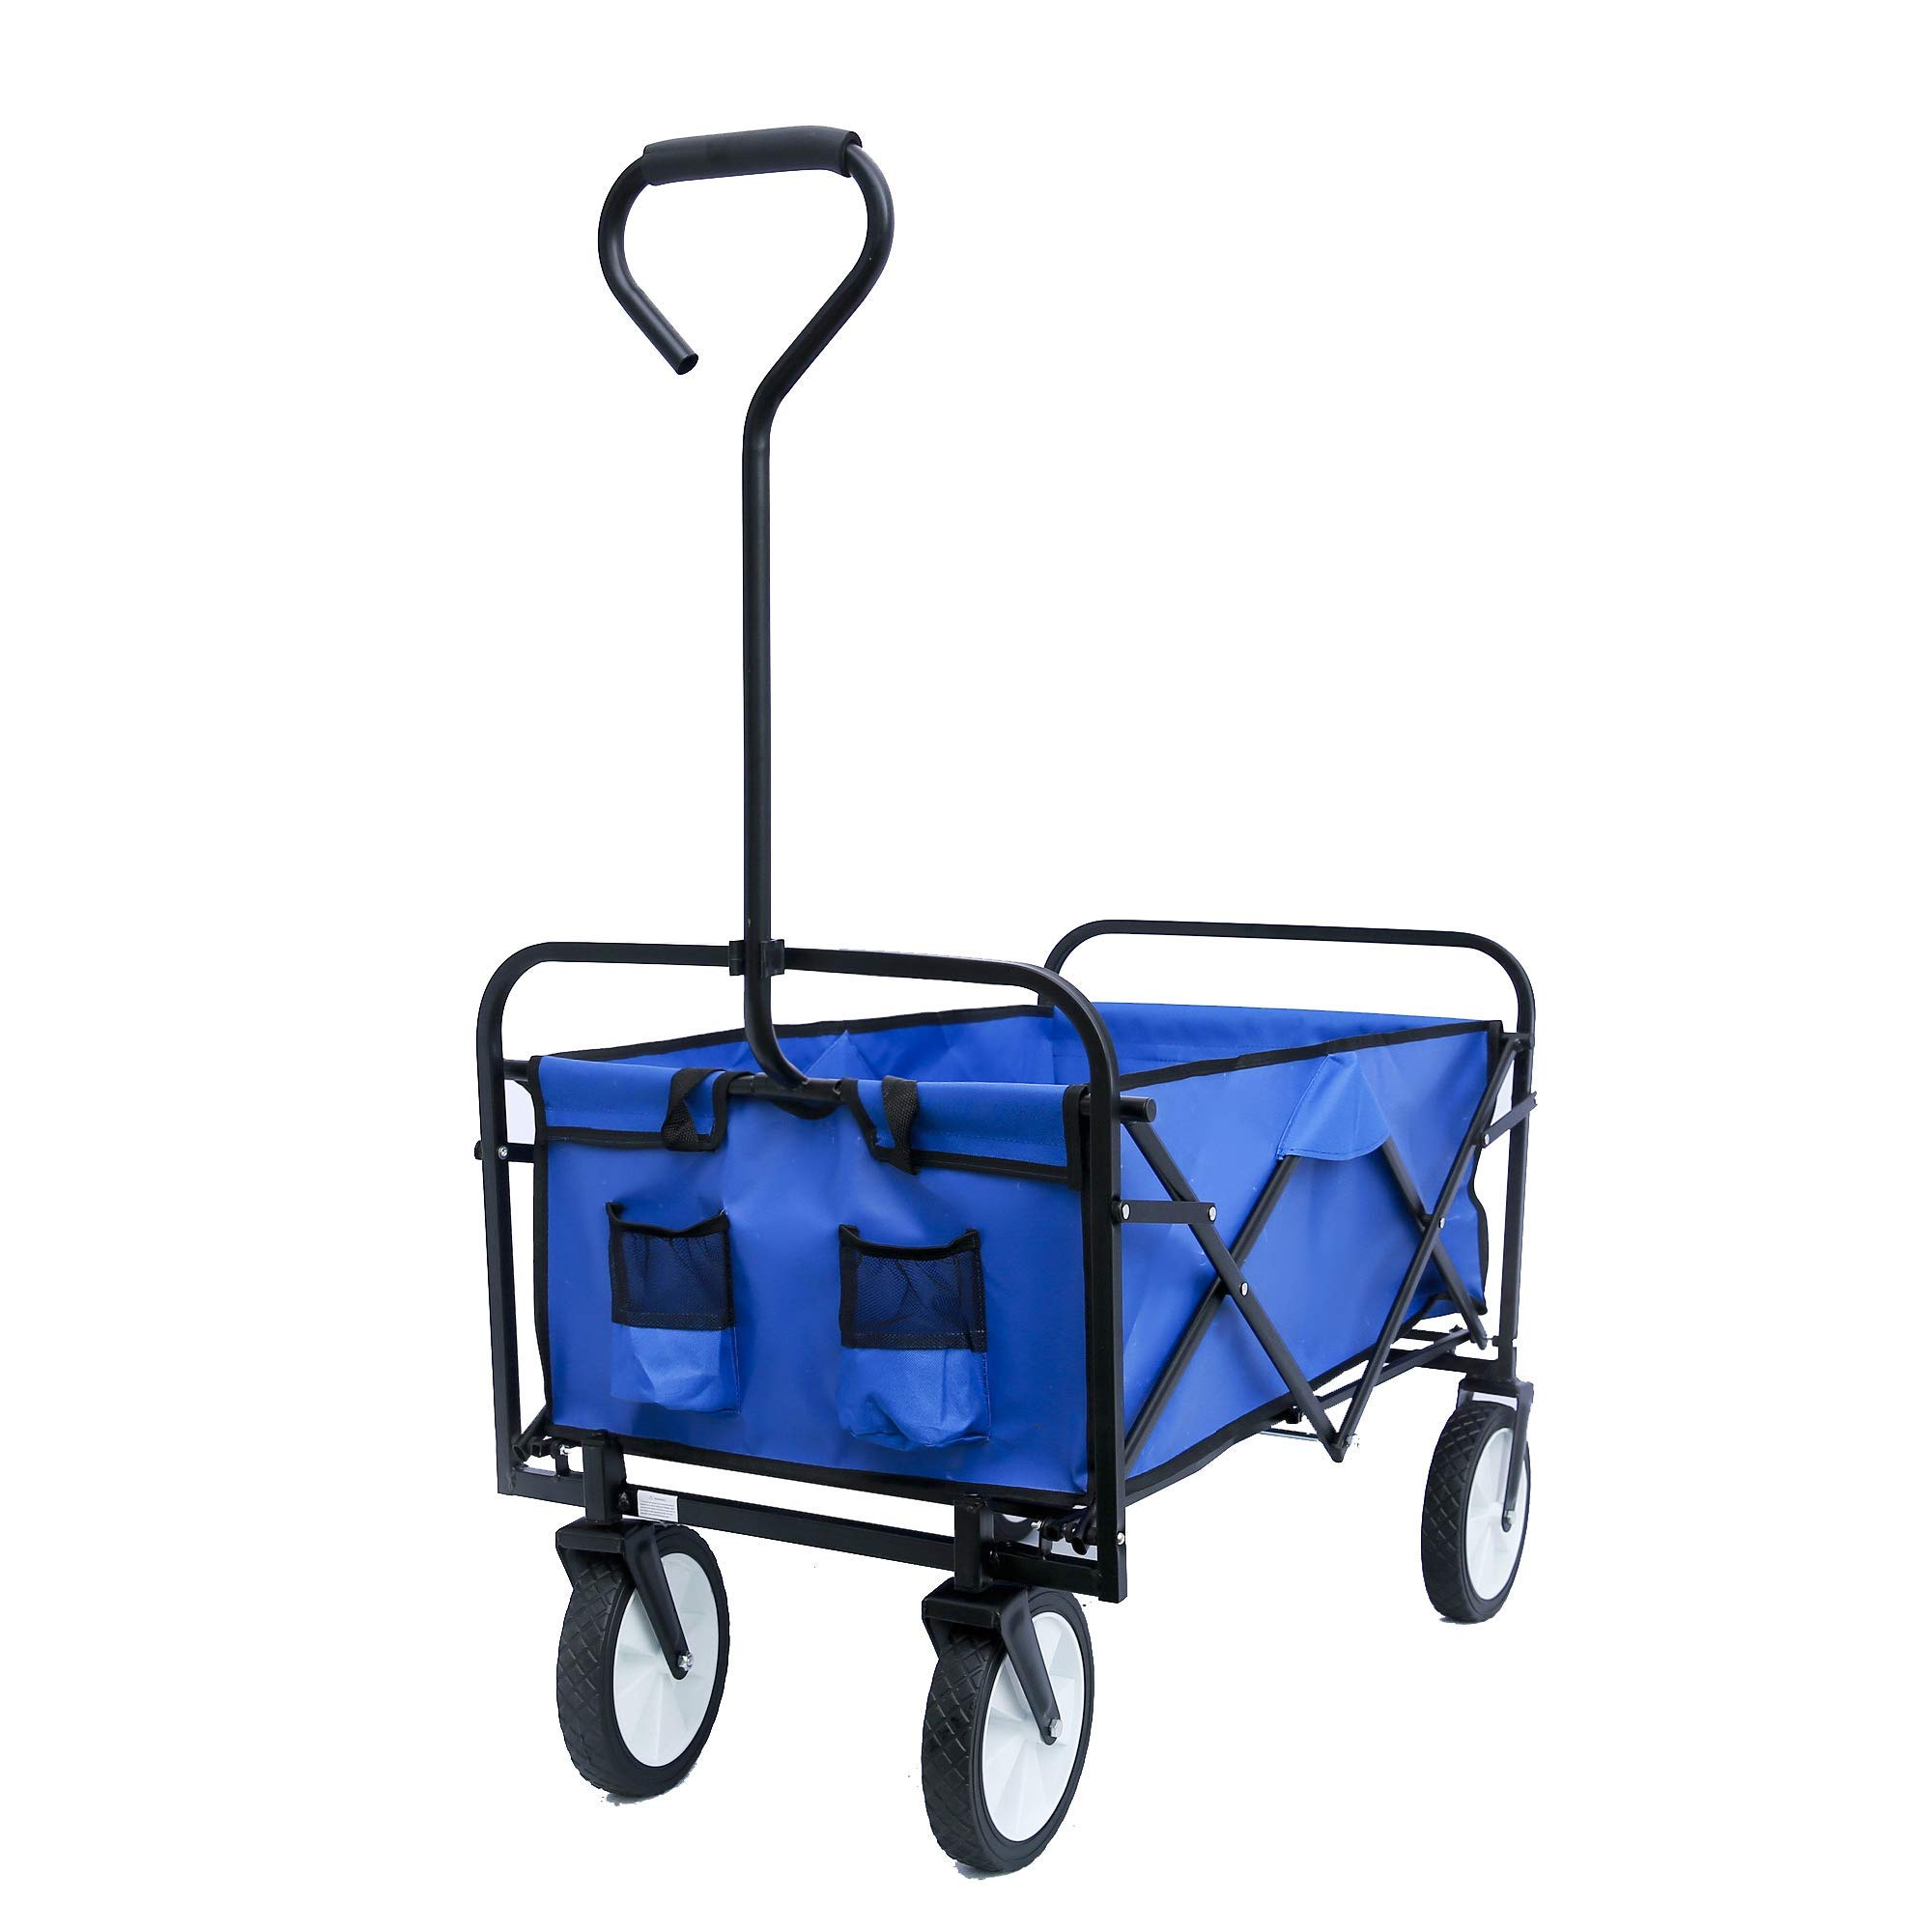 ALI VIRGO Collapsible Outdoor Utility Wagon, Heavy Duty Folding Garden Portable Hand Cart, with 8'' Rubber Wheels and Drink Holder Suit for Shopping and Park Picnic, Beach Trip and Camping, (Blue) by ALI VIRGO